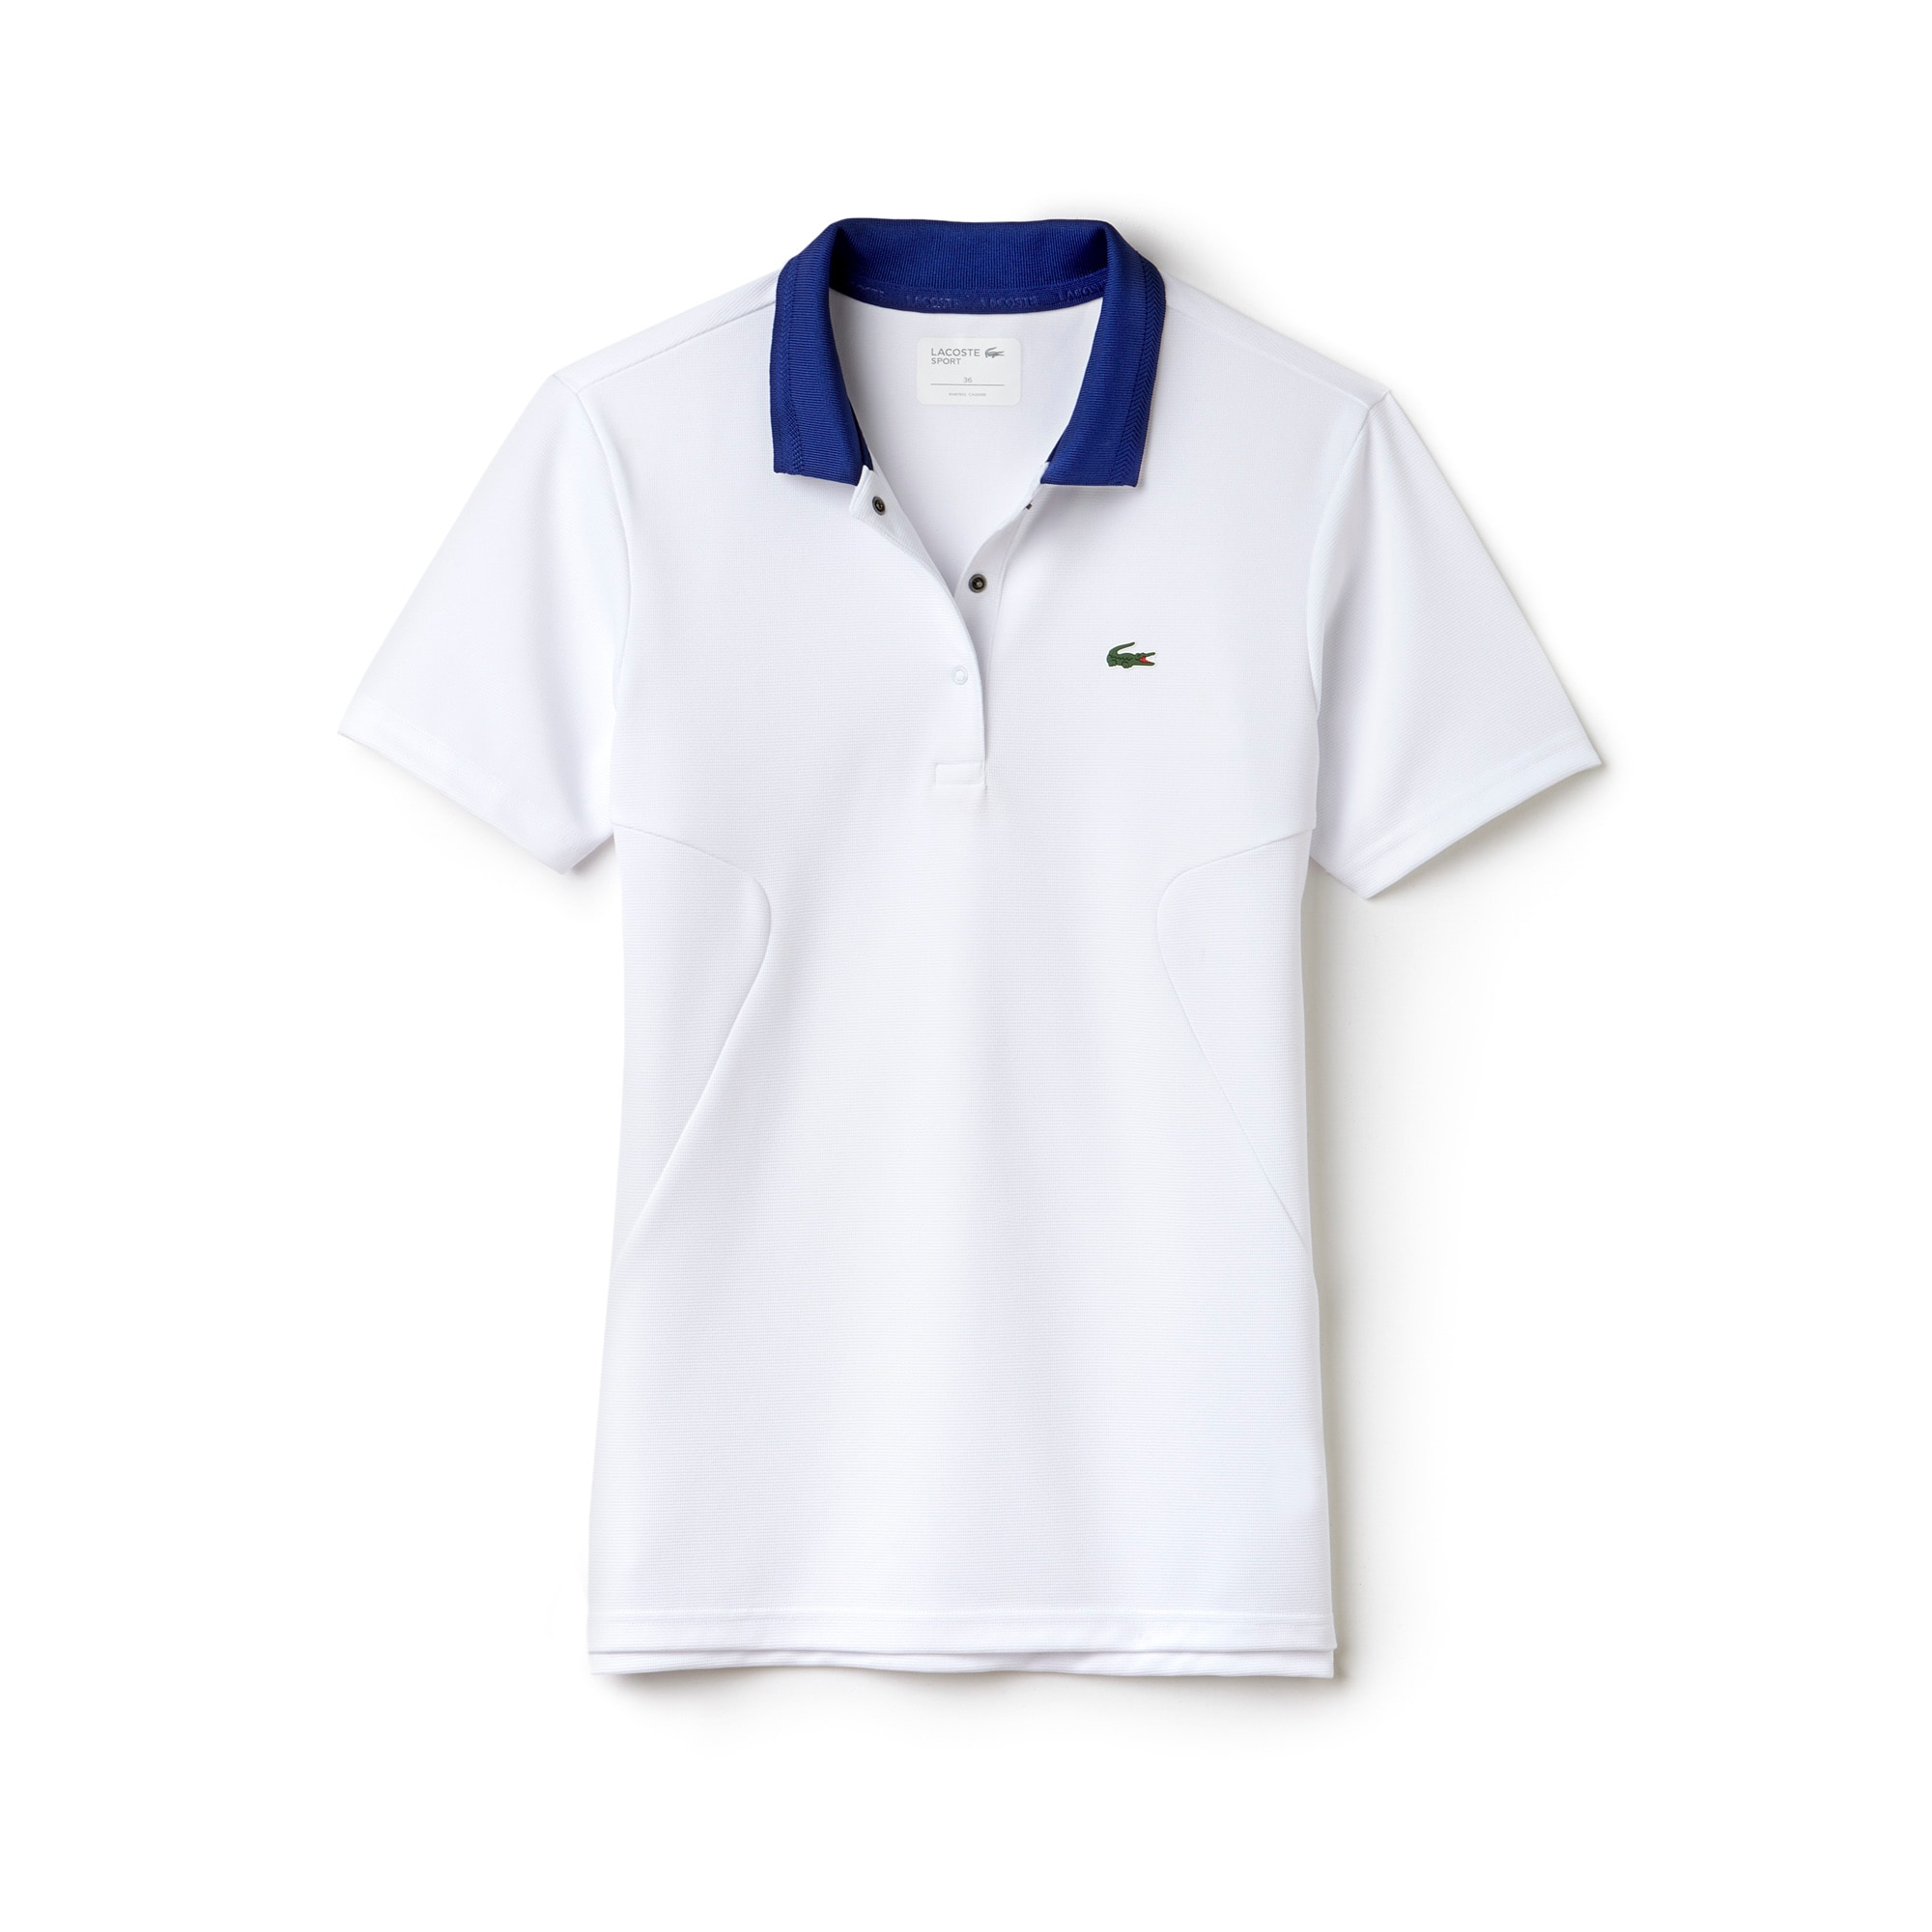 Women's  SPORT Golf Tech Honeycomb Knit Polo